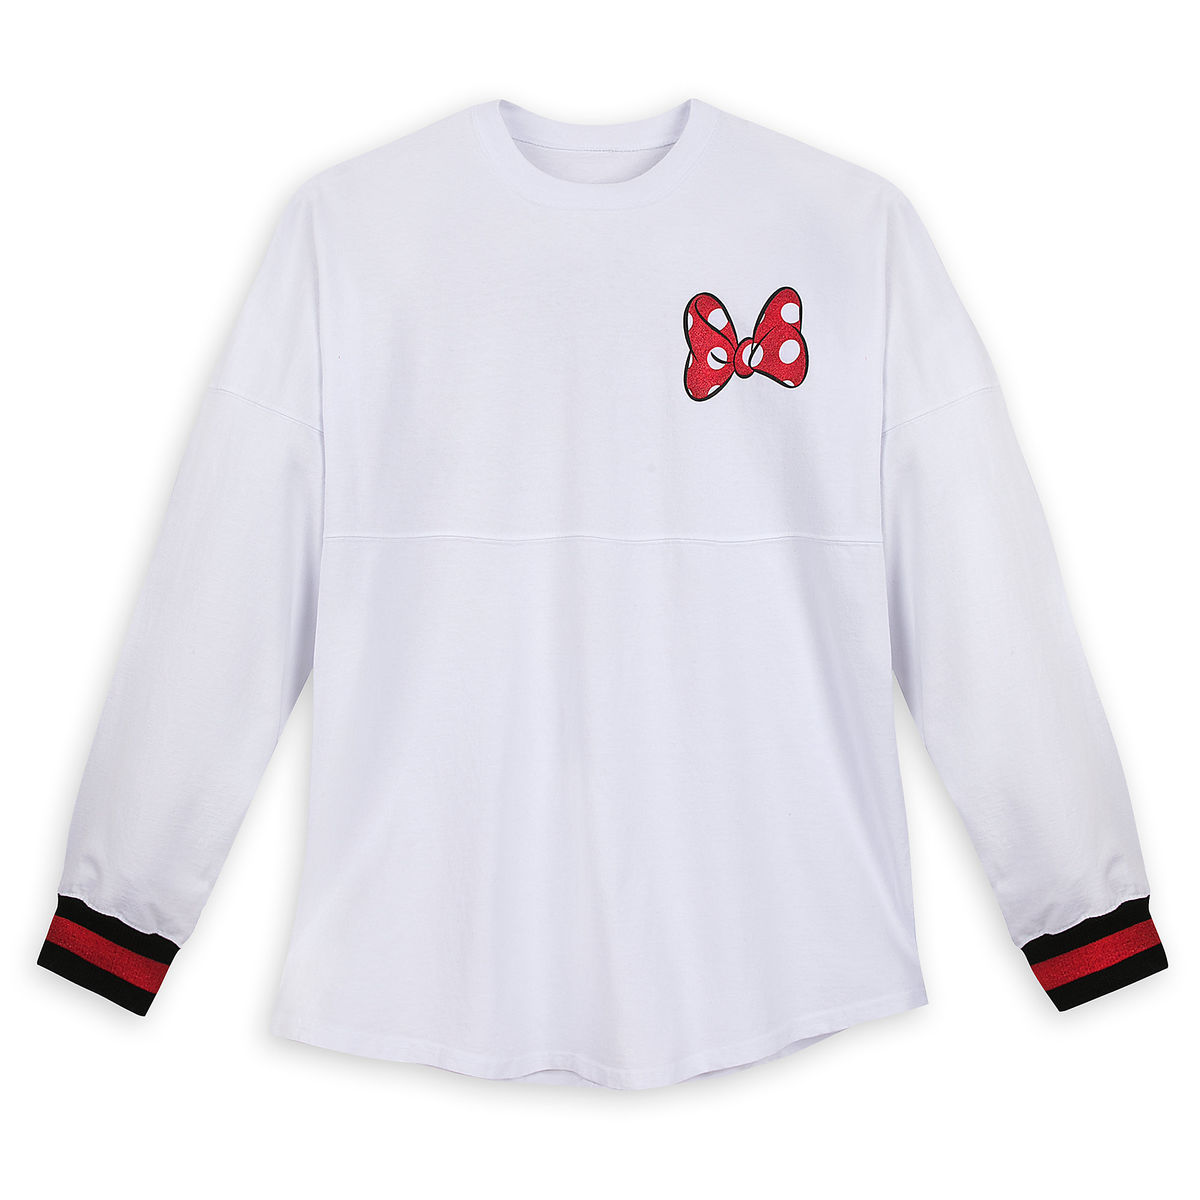 Product Image of Minnie Mouse Spirit Jersey for Women   1 c7d5810b9